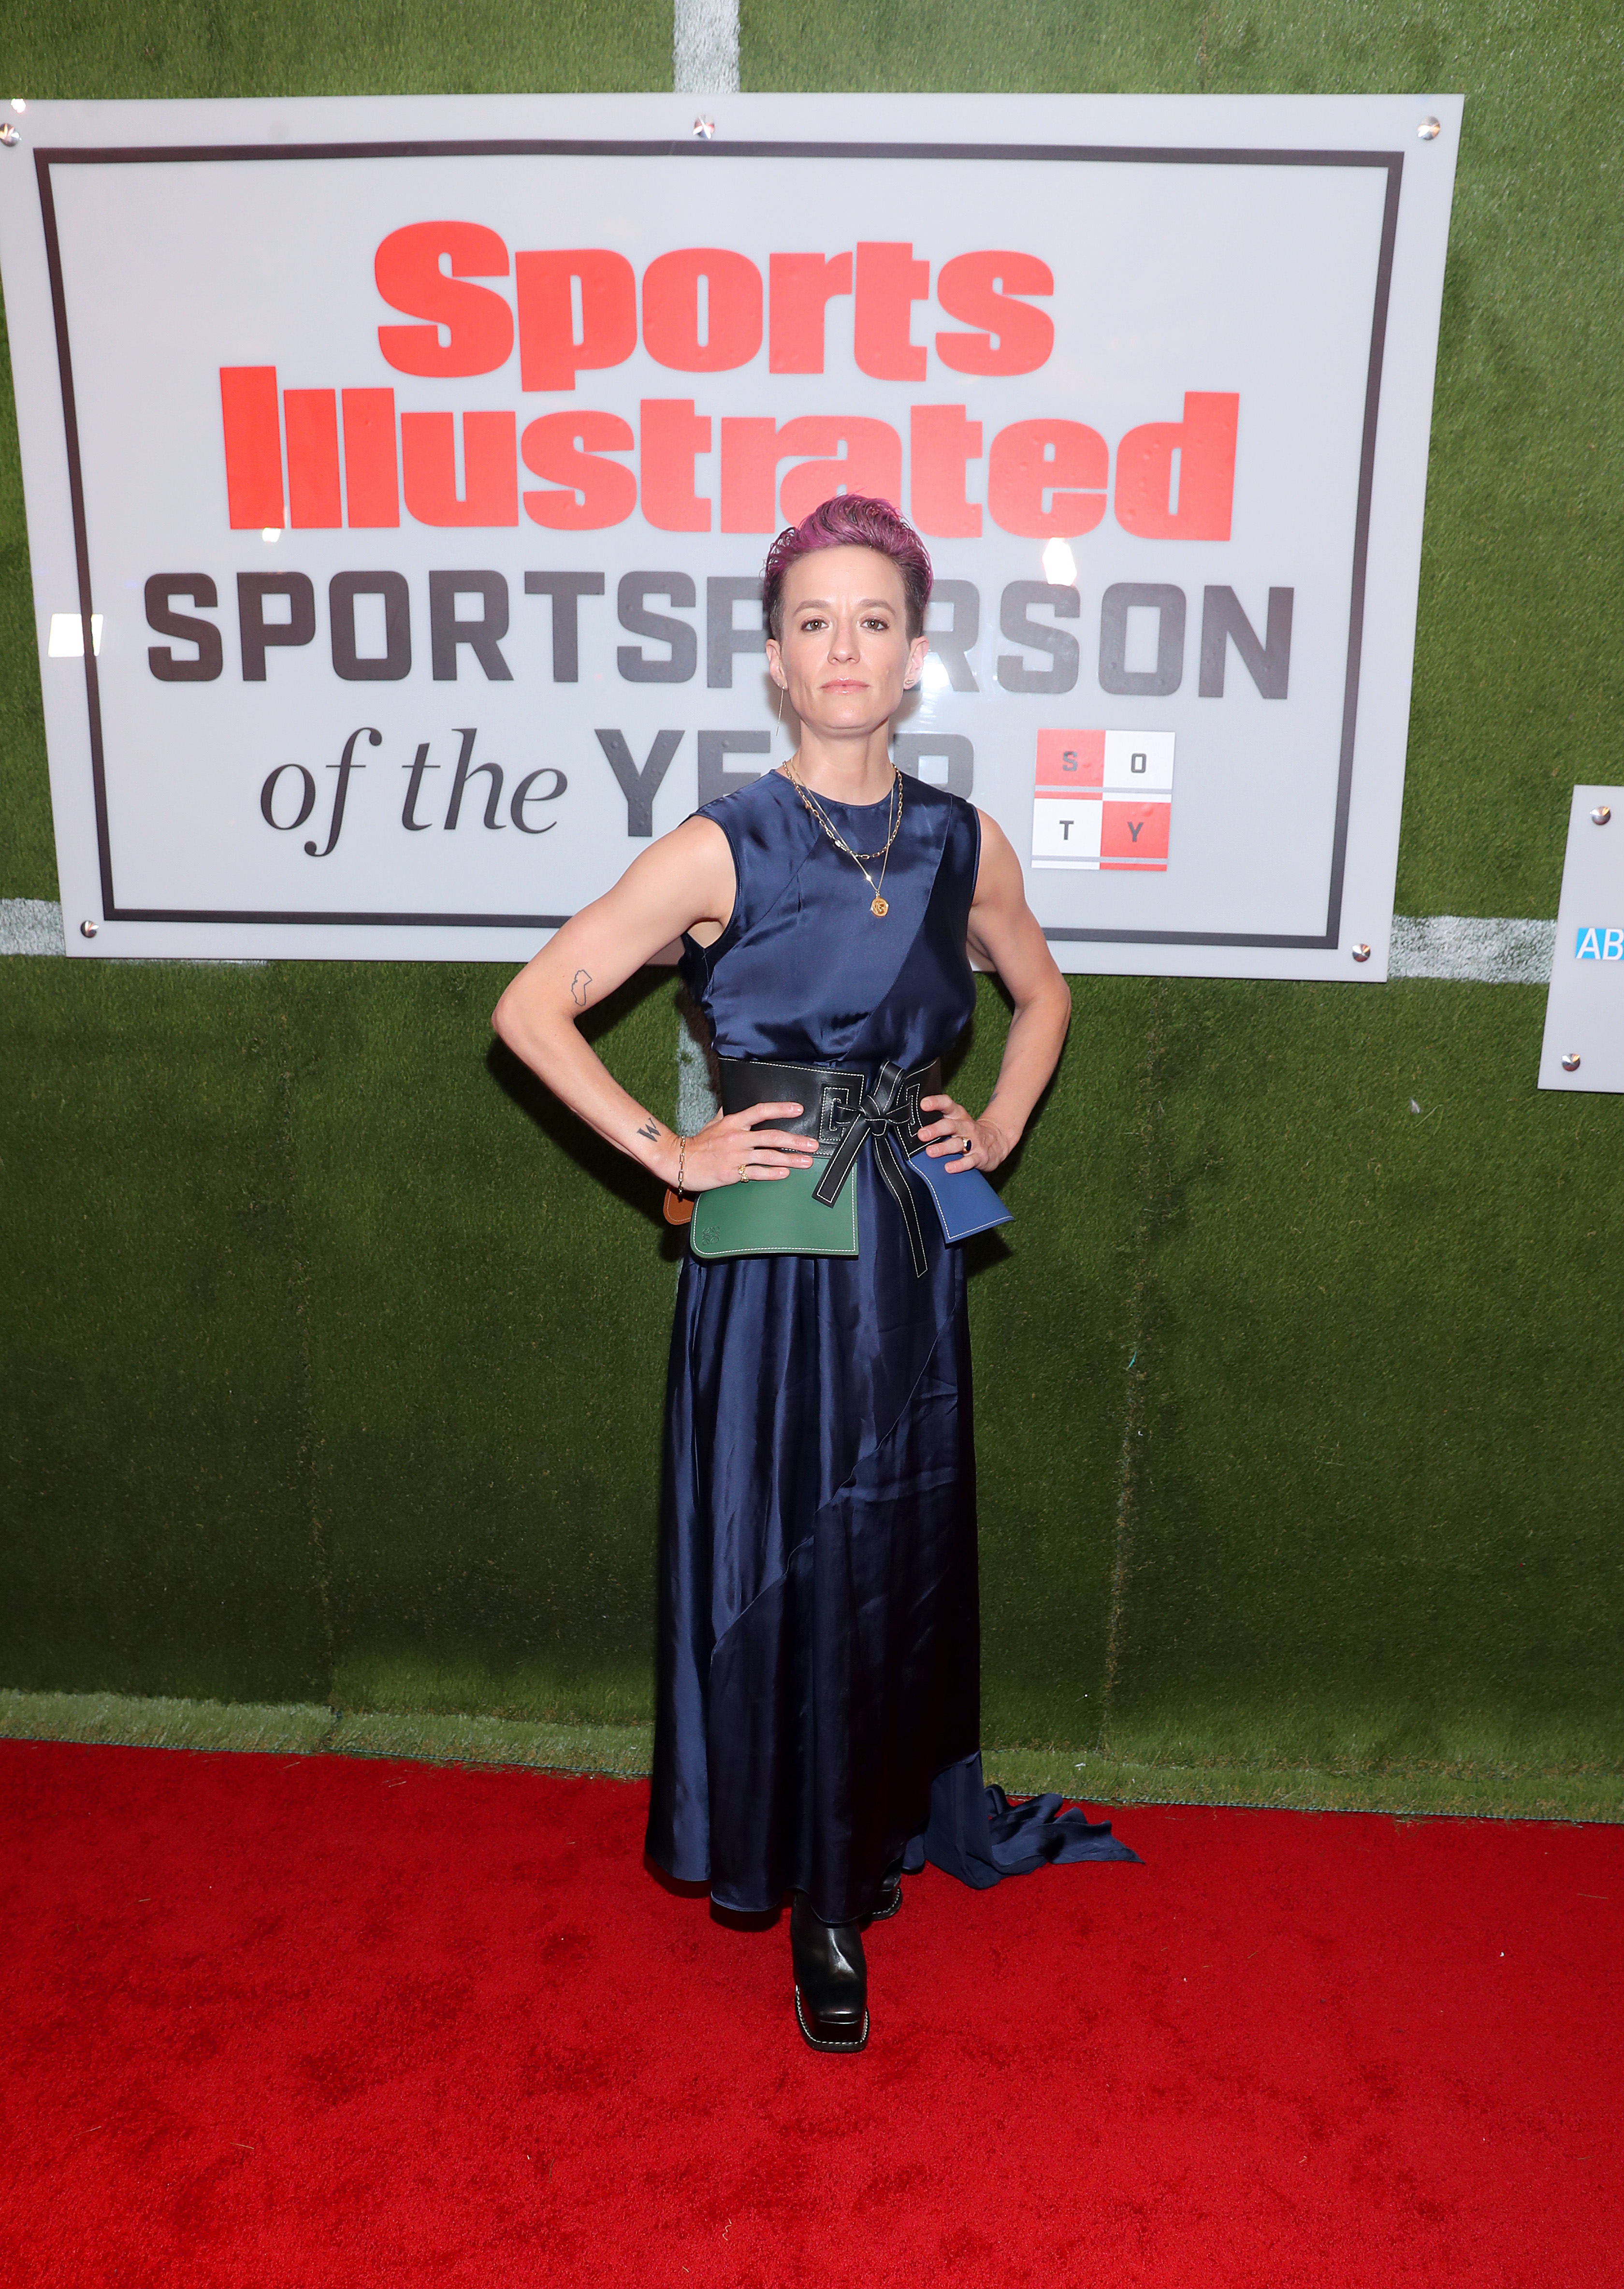 Sports Illustrated Sportsperson Of The Year 2019